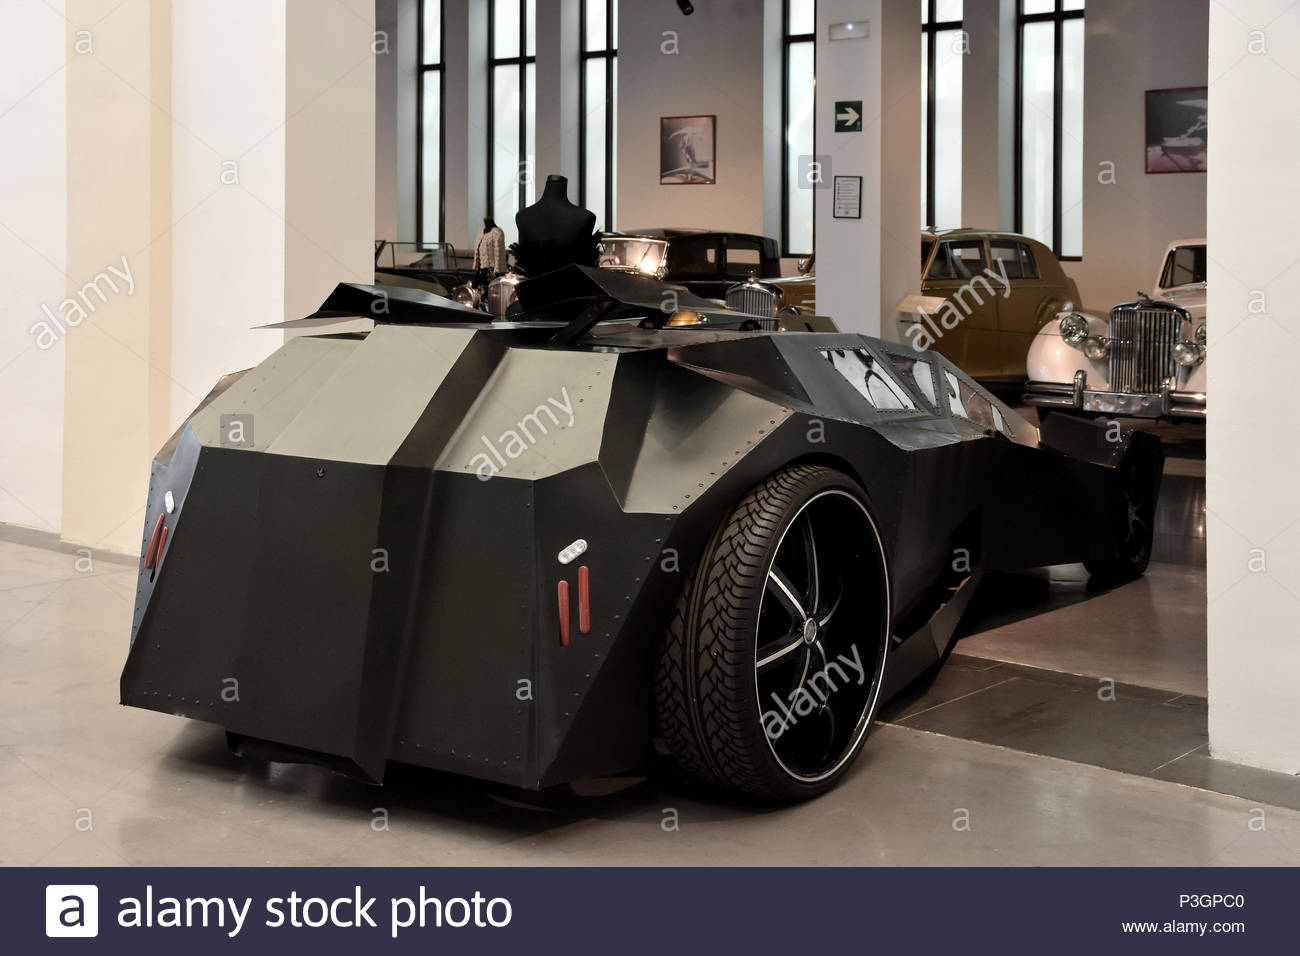 Star Wars Compressed Air Prototype Car displayed at Museum of Automobiles (Museo Automovilístico) in Malaga Spain Europe. - Stock Image